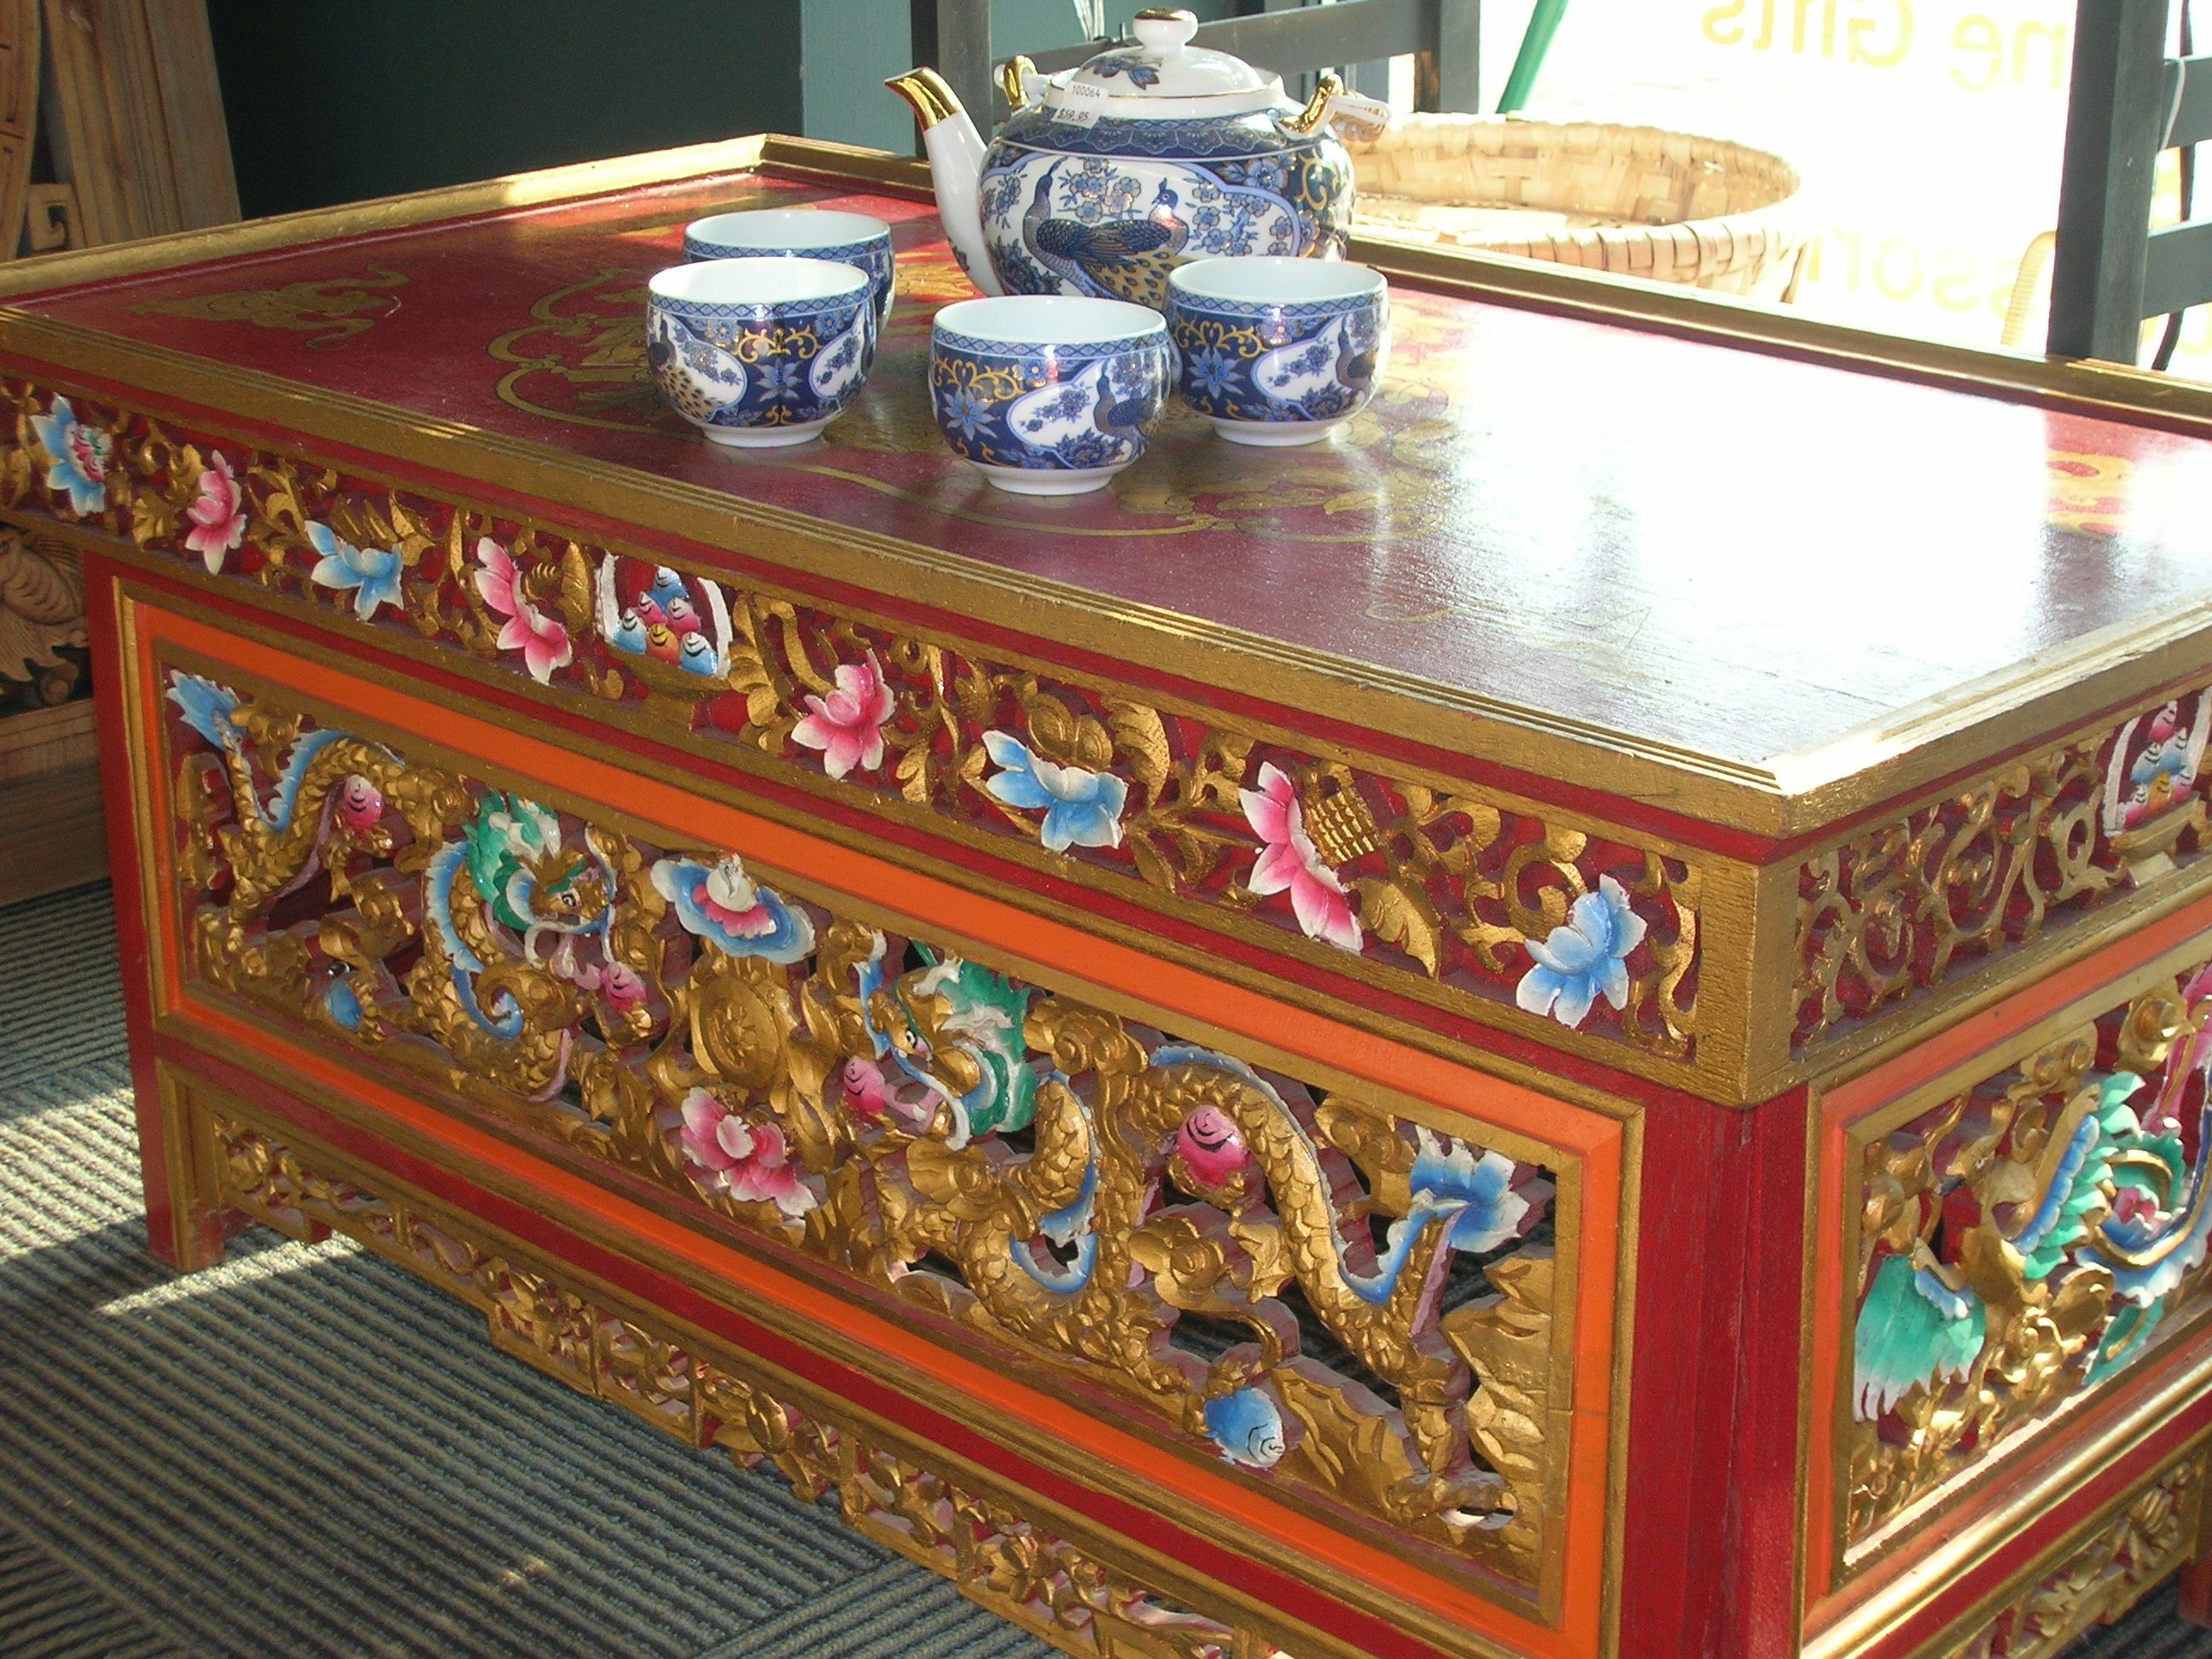 Genial Hand Carved Traditional Tibetan Table. Perfect For Tea, Or Setting Up A  Special Altar In Your Meditation Room.